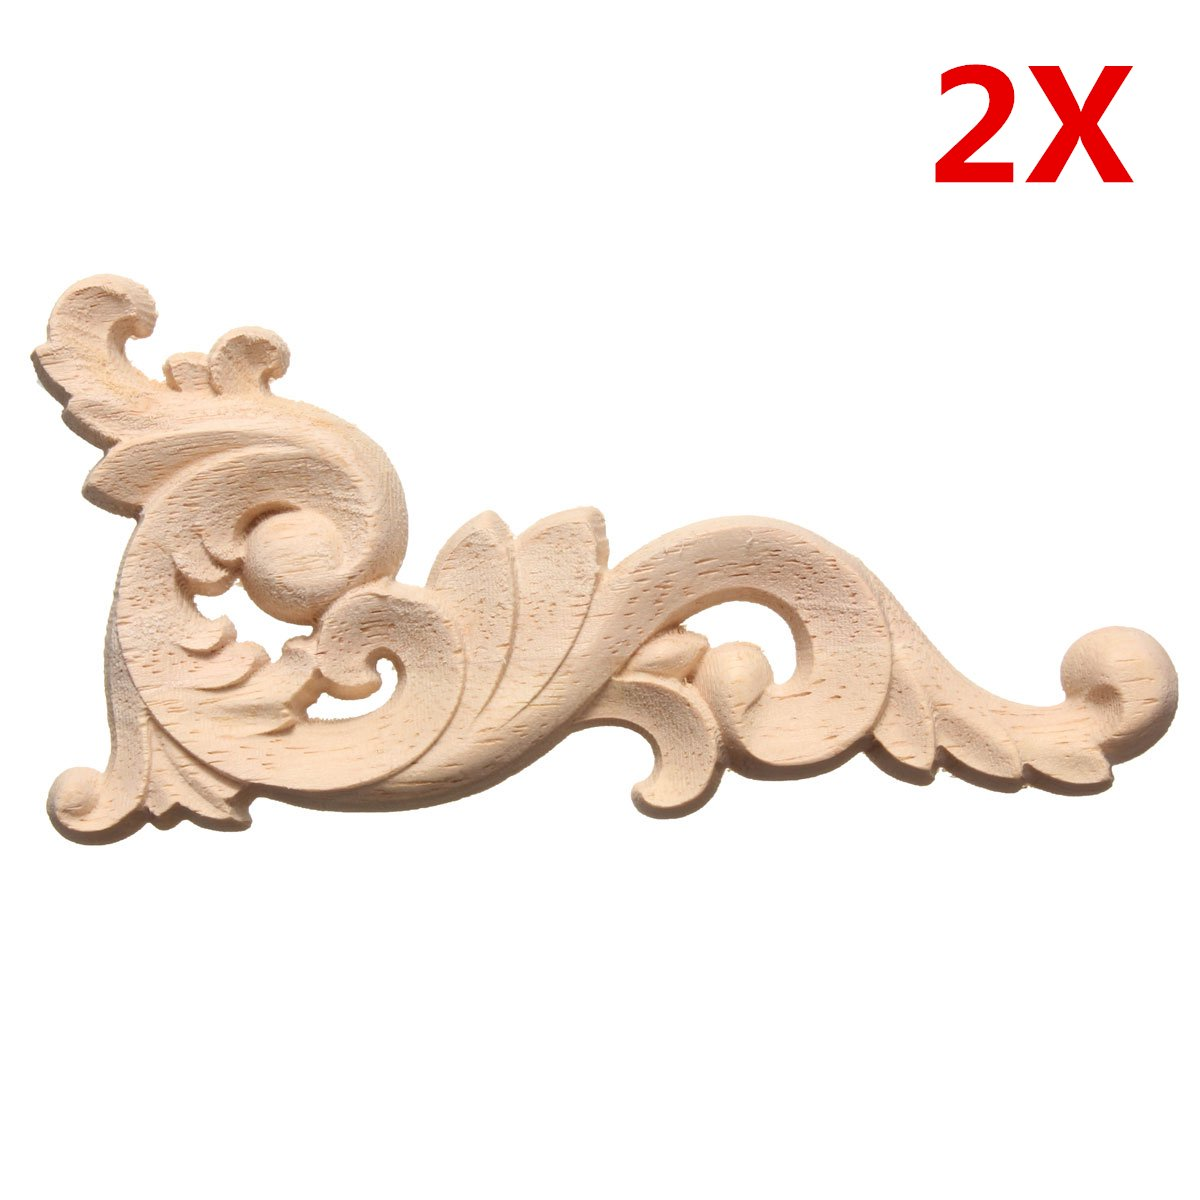 12x6cm Wood Carved Decal Corner Onlay Lique Frame Door Wall Cabinets Furniture Home Decor Unpainted New